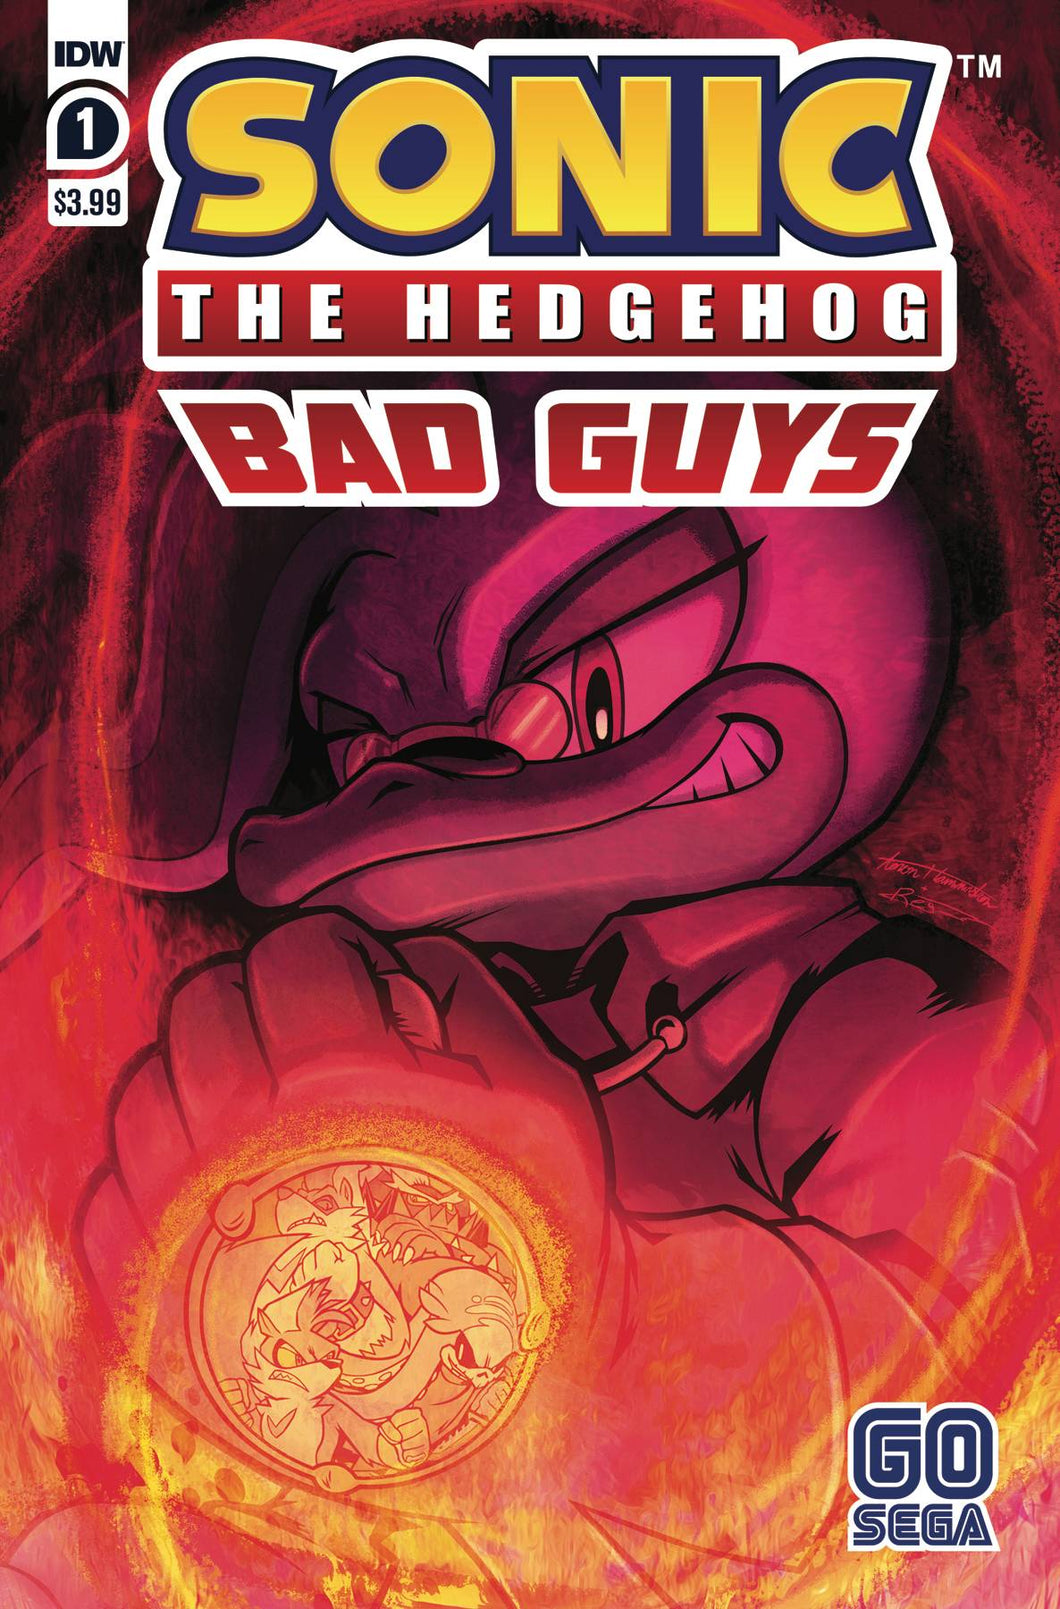 SONIC THE HEDGEHOG BAD GUYS #1 (OF 4) CVR A HAMMERSTROM